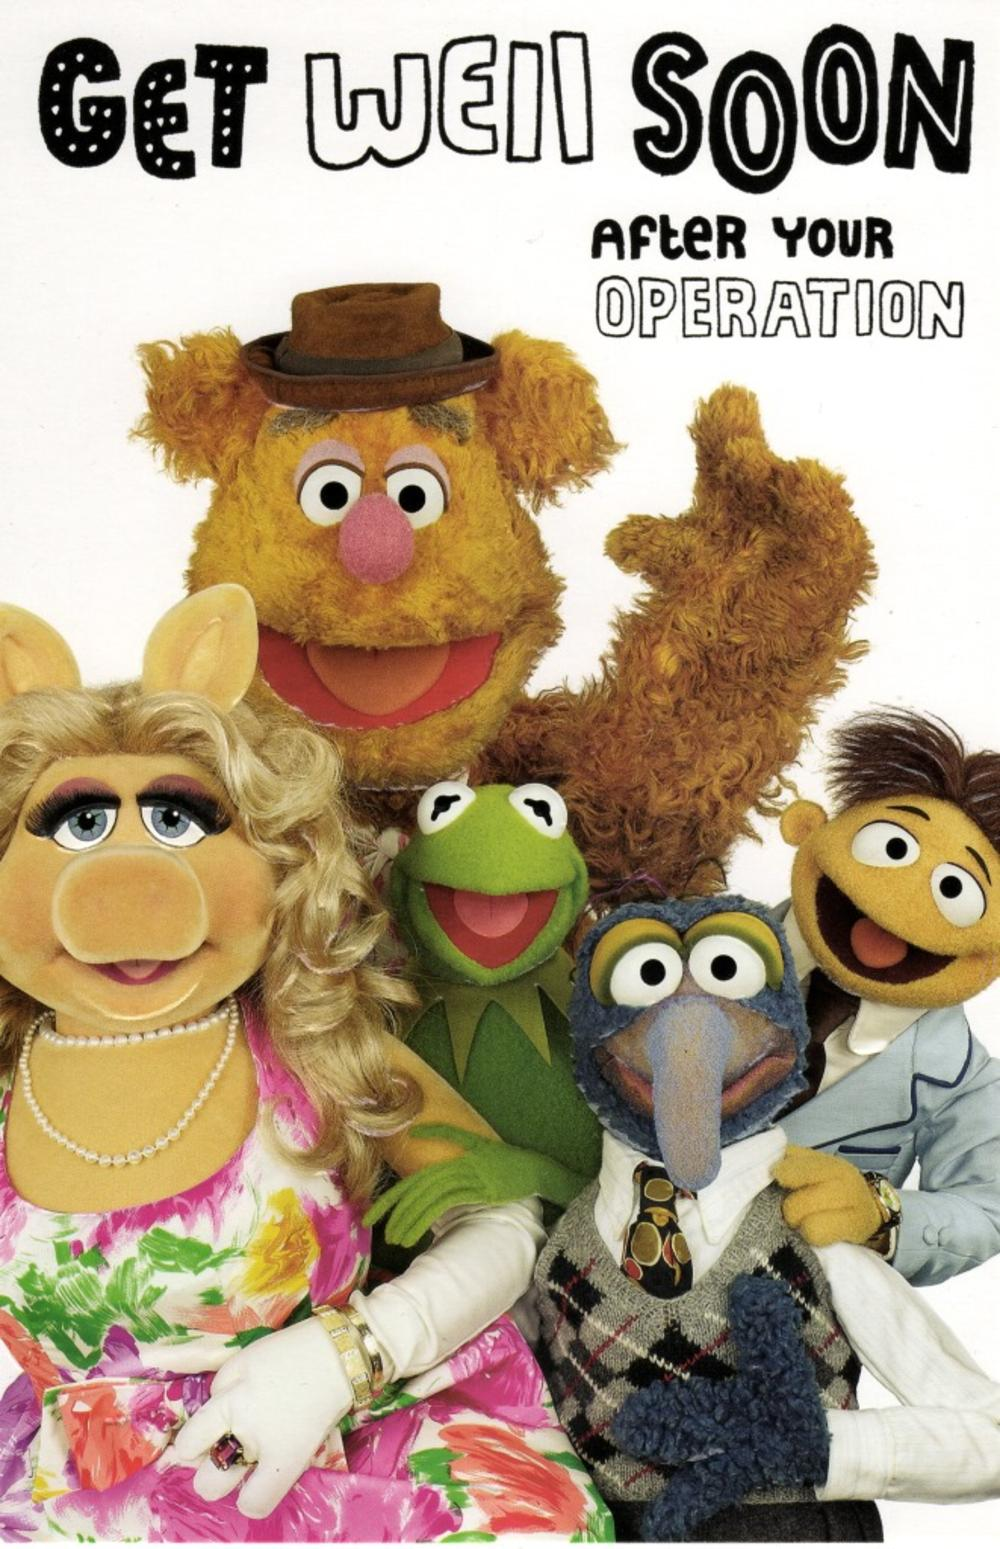 The muppets get well soon after operation card cards love kates the muppets get well soon after operation card kristyandbryce Gallery